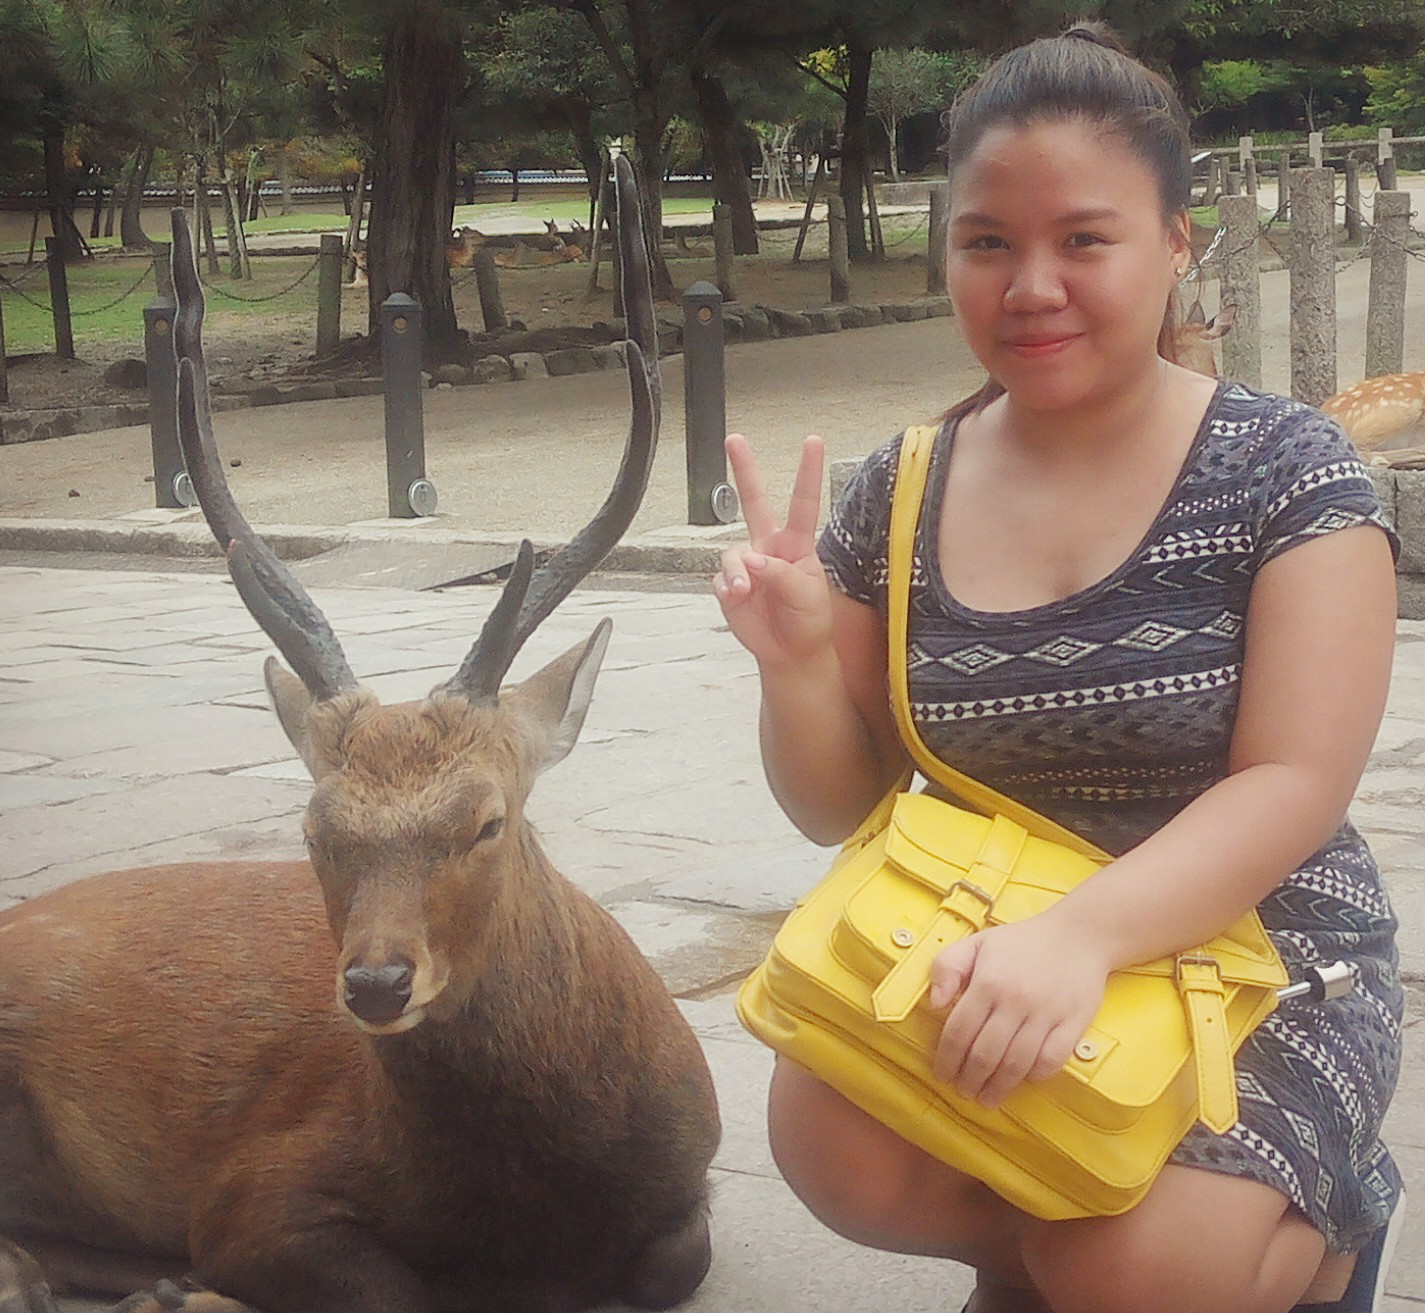 The author with a sleepy deer in Nara, Japan